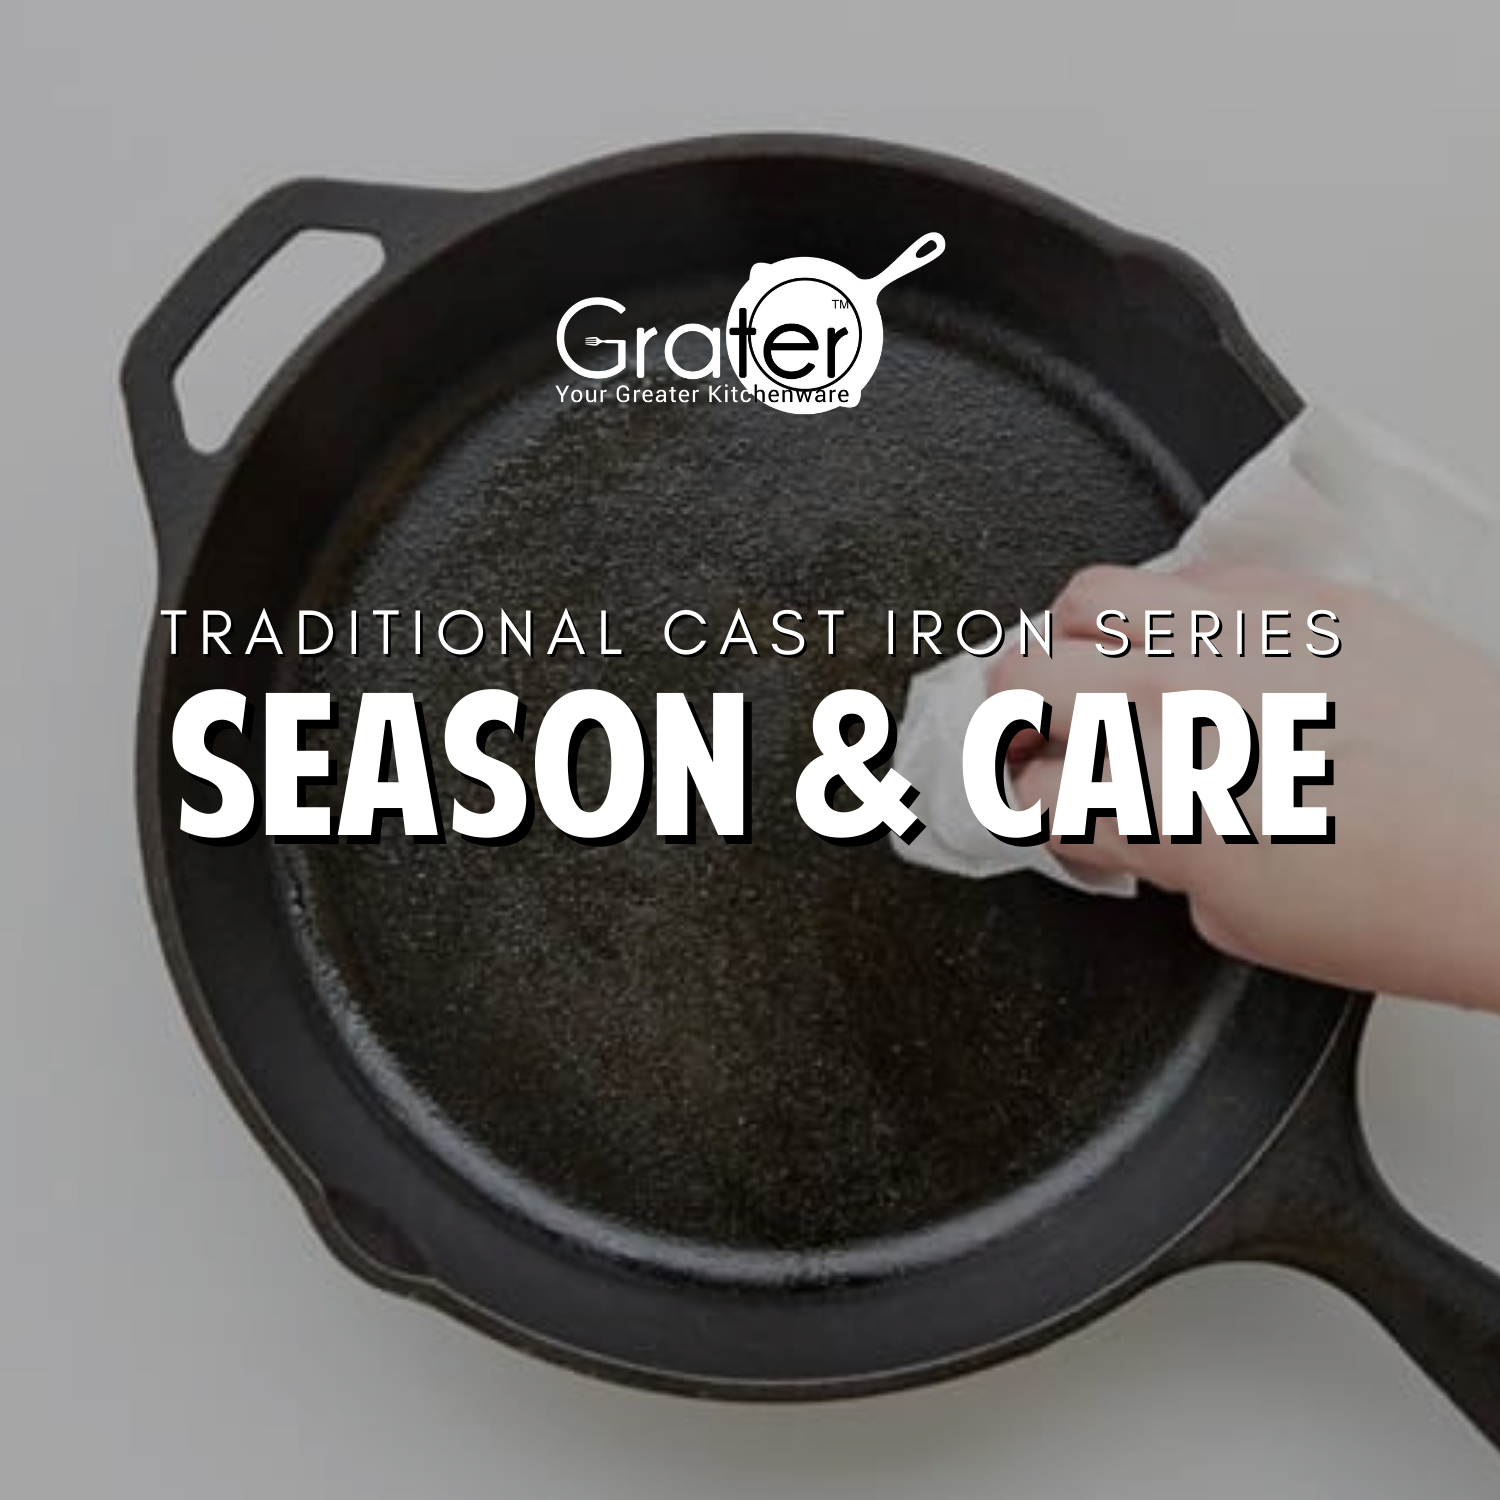 Season & Care - Traditional Cast iron Series